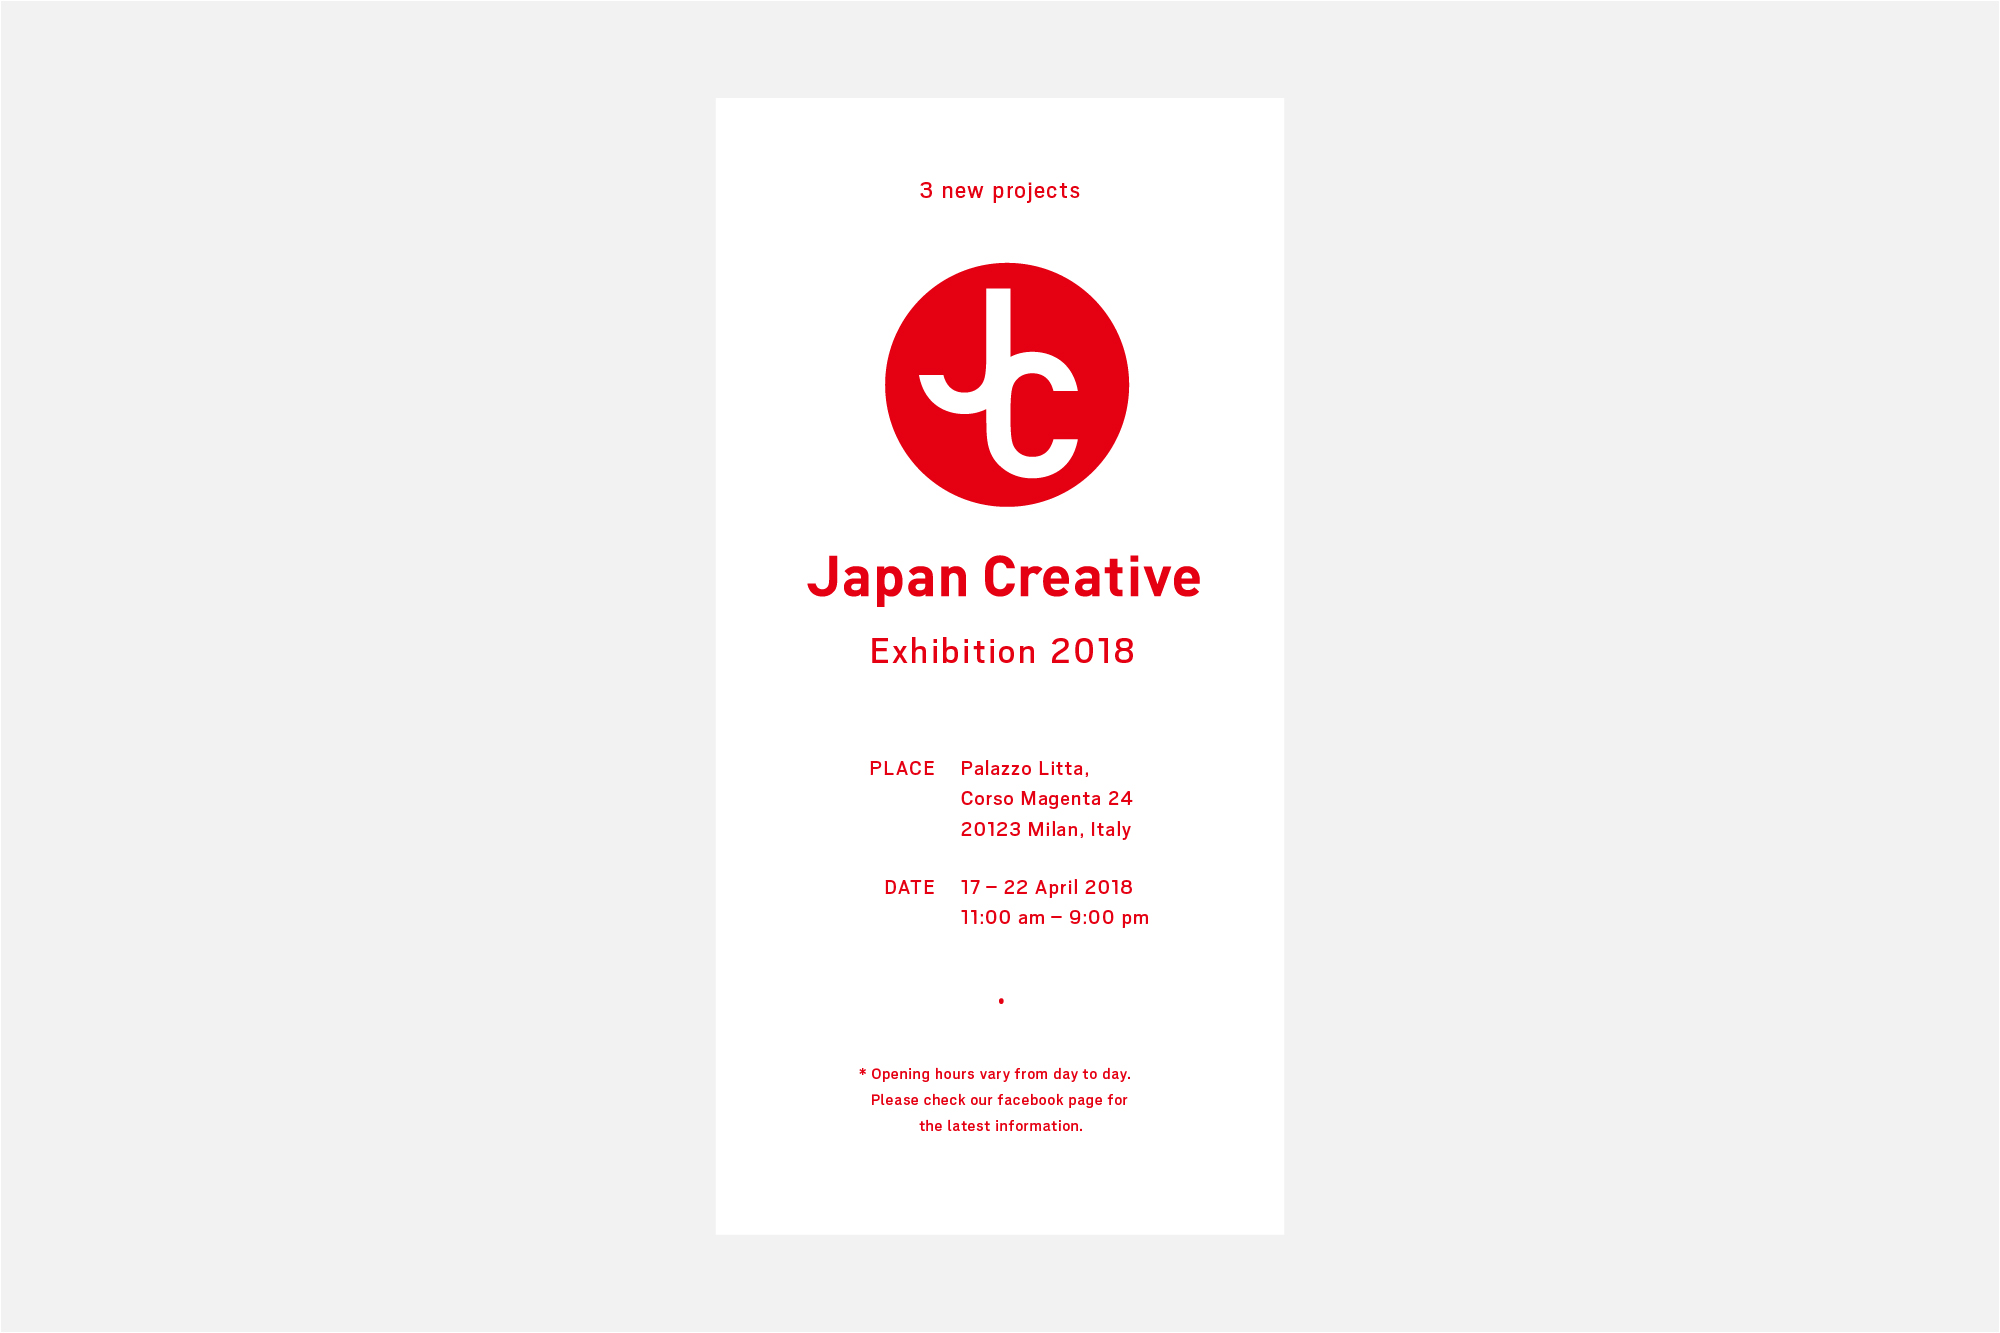 Japan Creative Exhibition Milan 2018